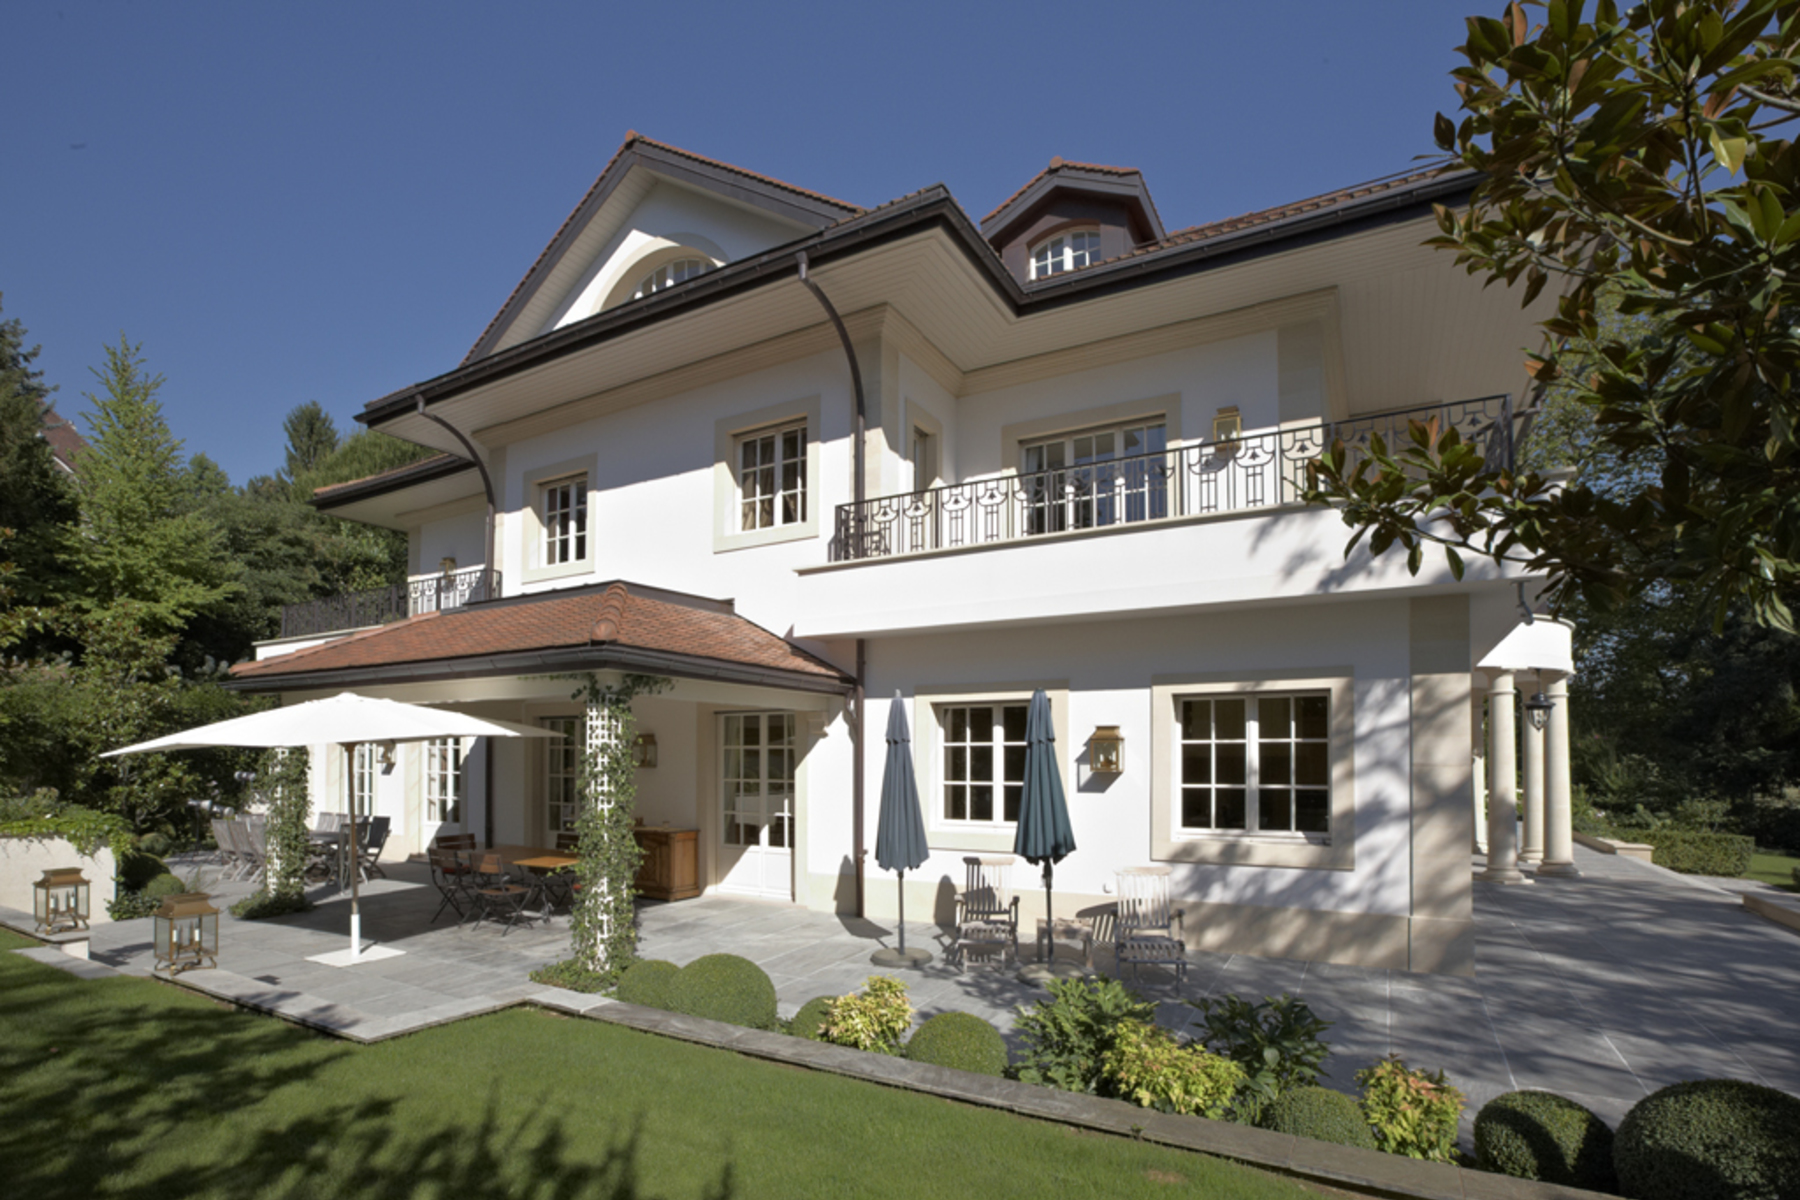 Single Family Homes のために 売買 アット Superb mansion close to Denantou park Lausanne ローザンヌ, ヴォー 1006 スイス